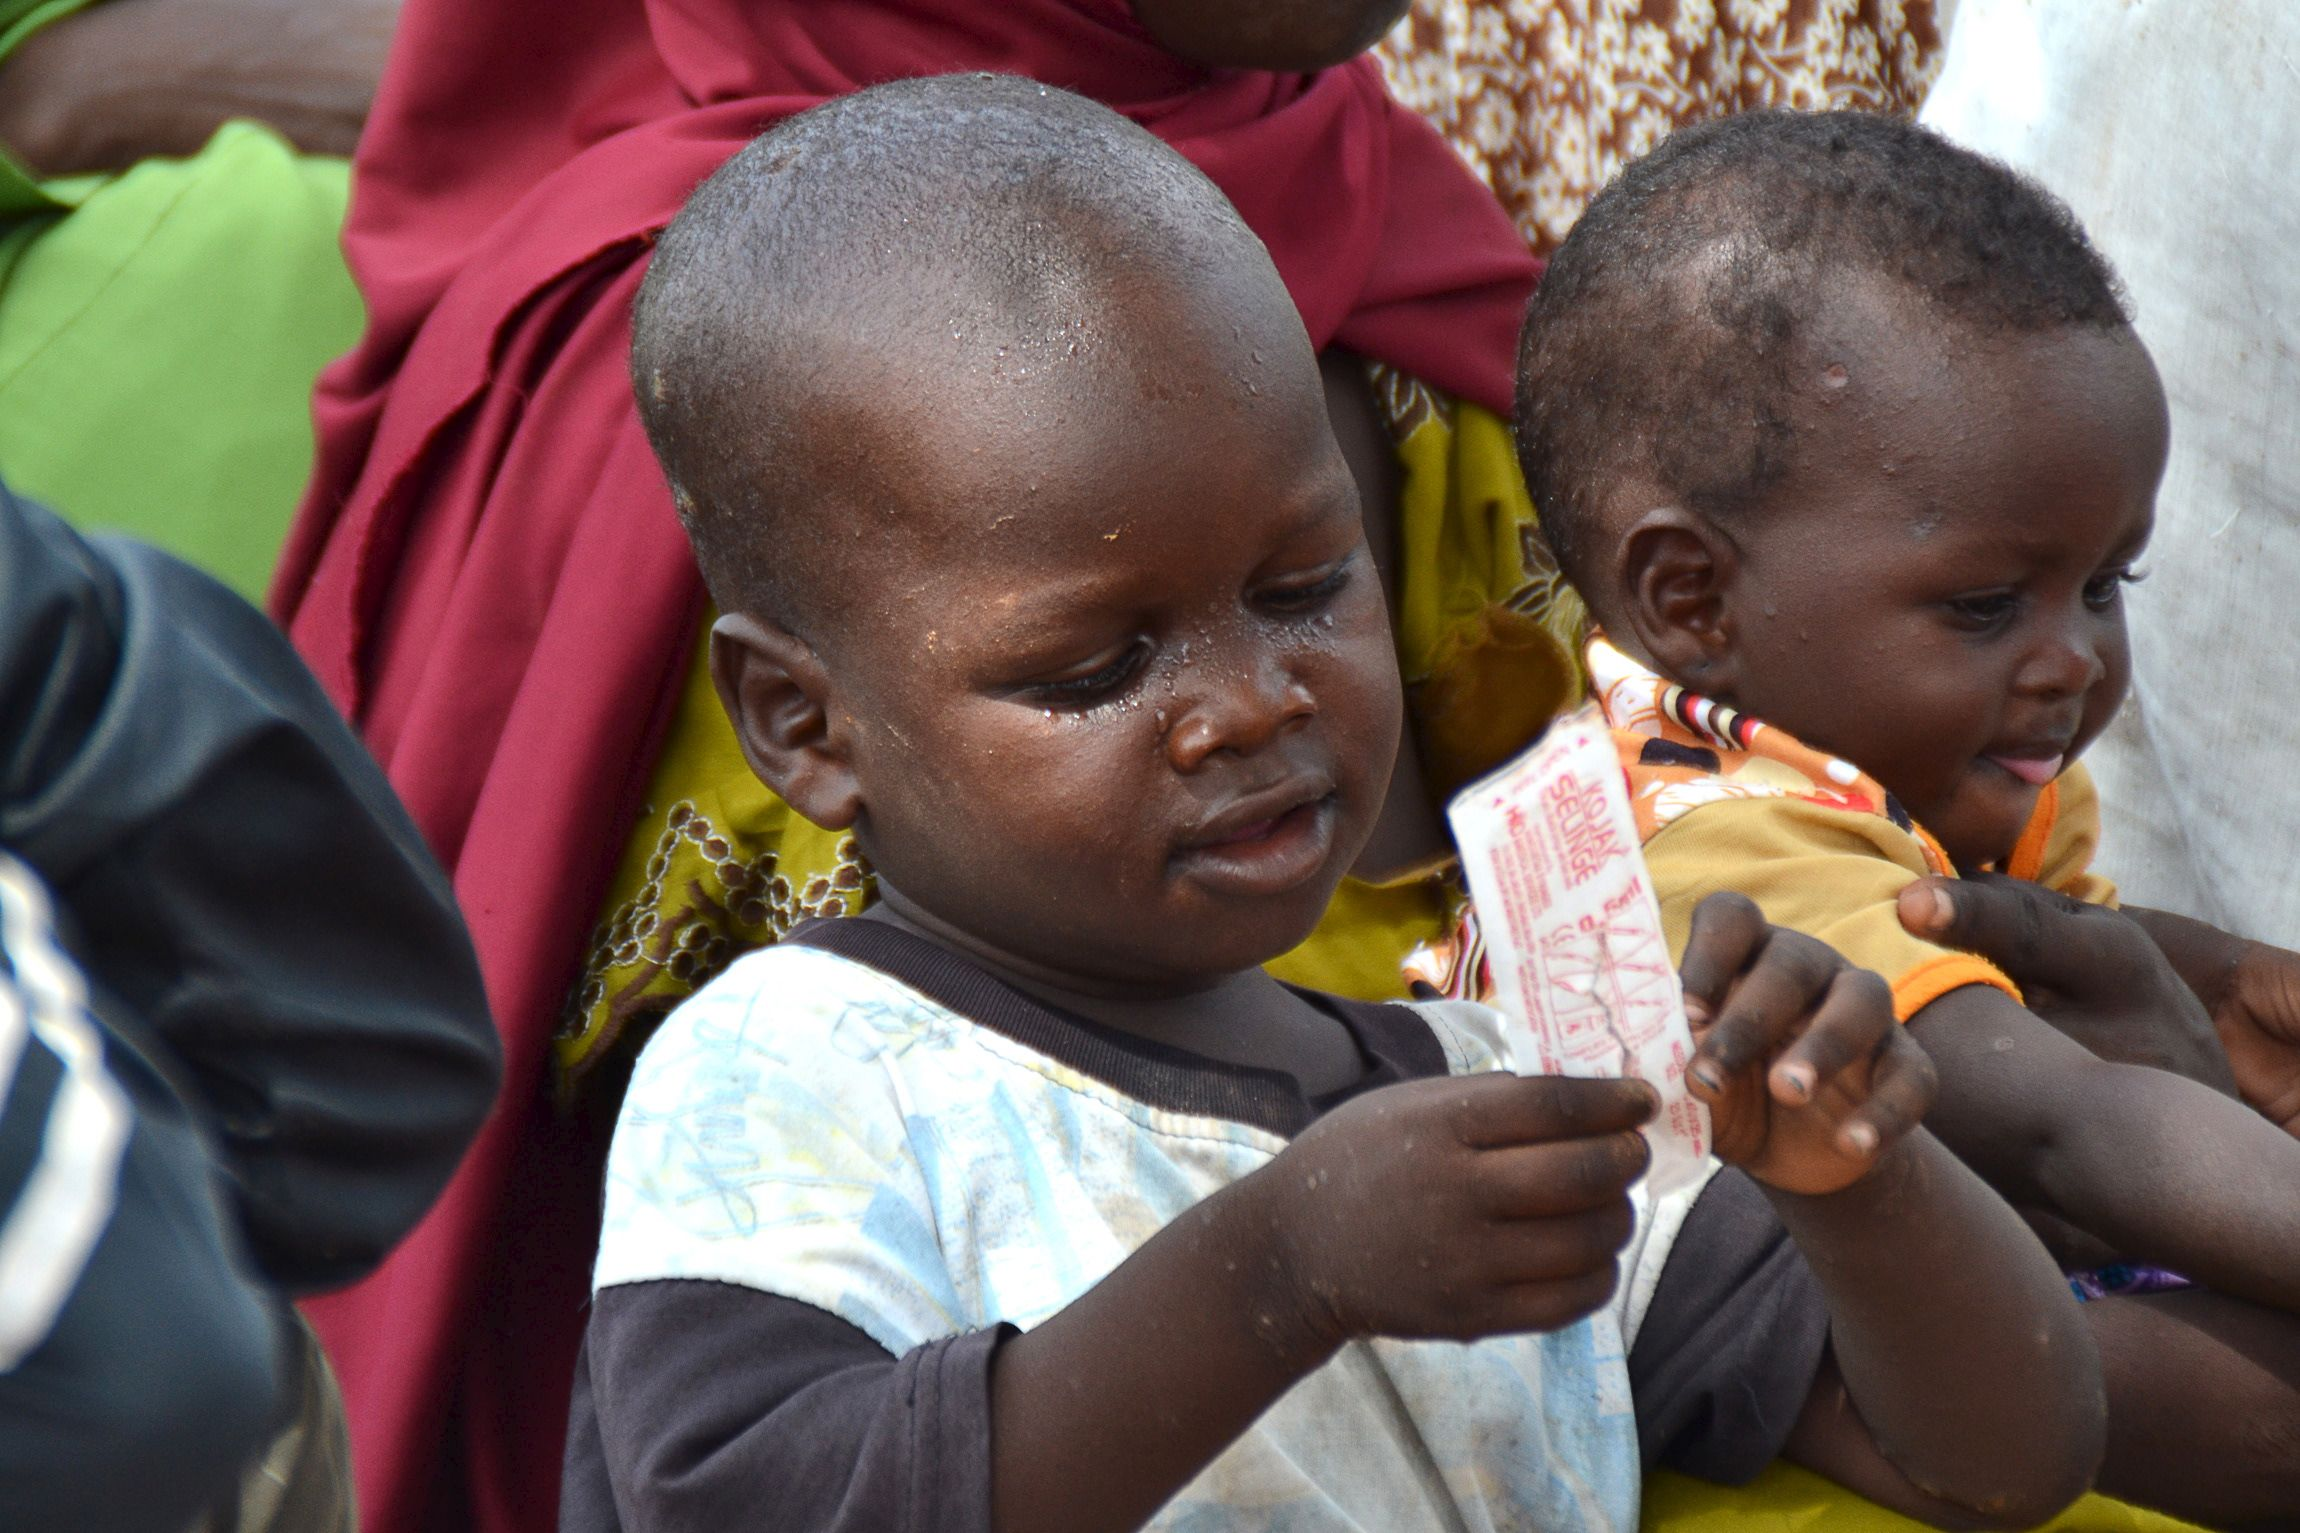 A child freed from Boko Haram awaits medical treatment.